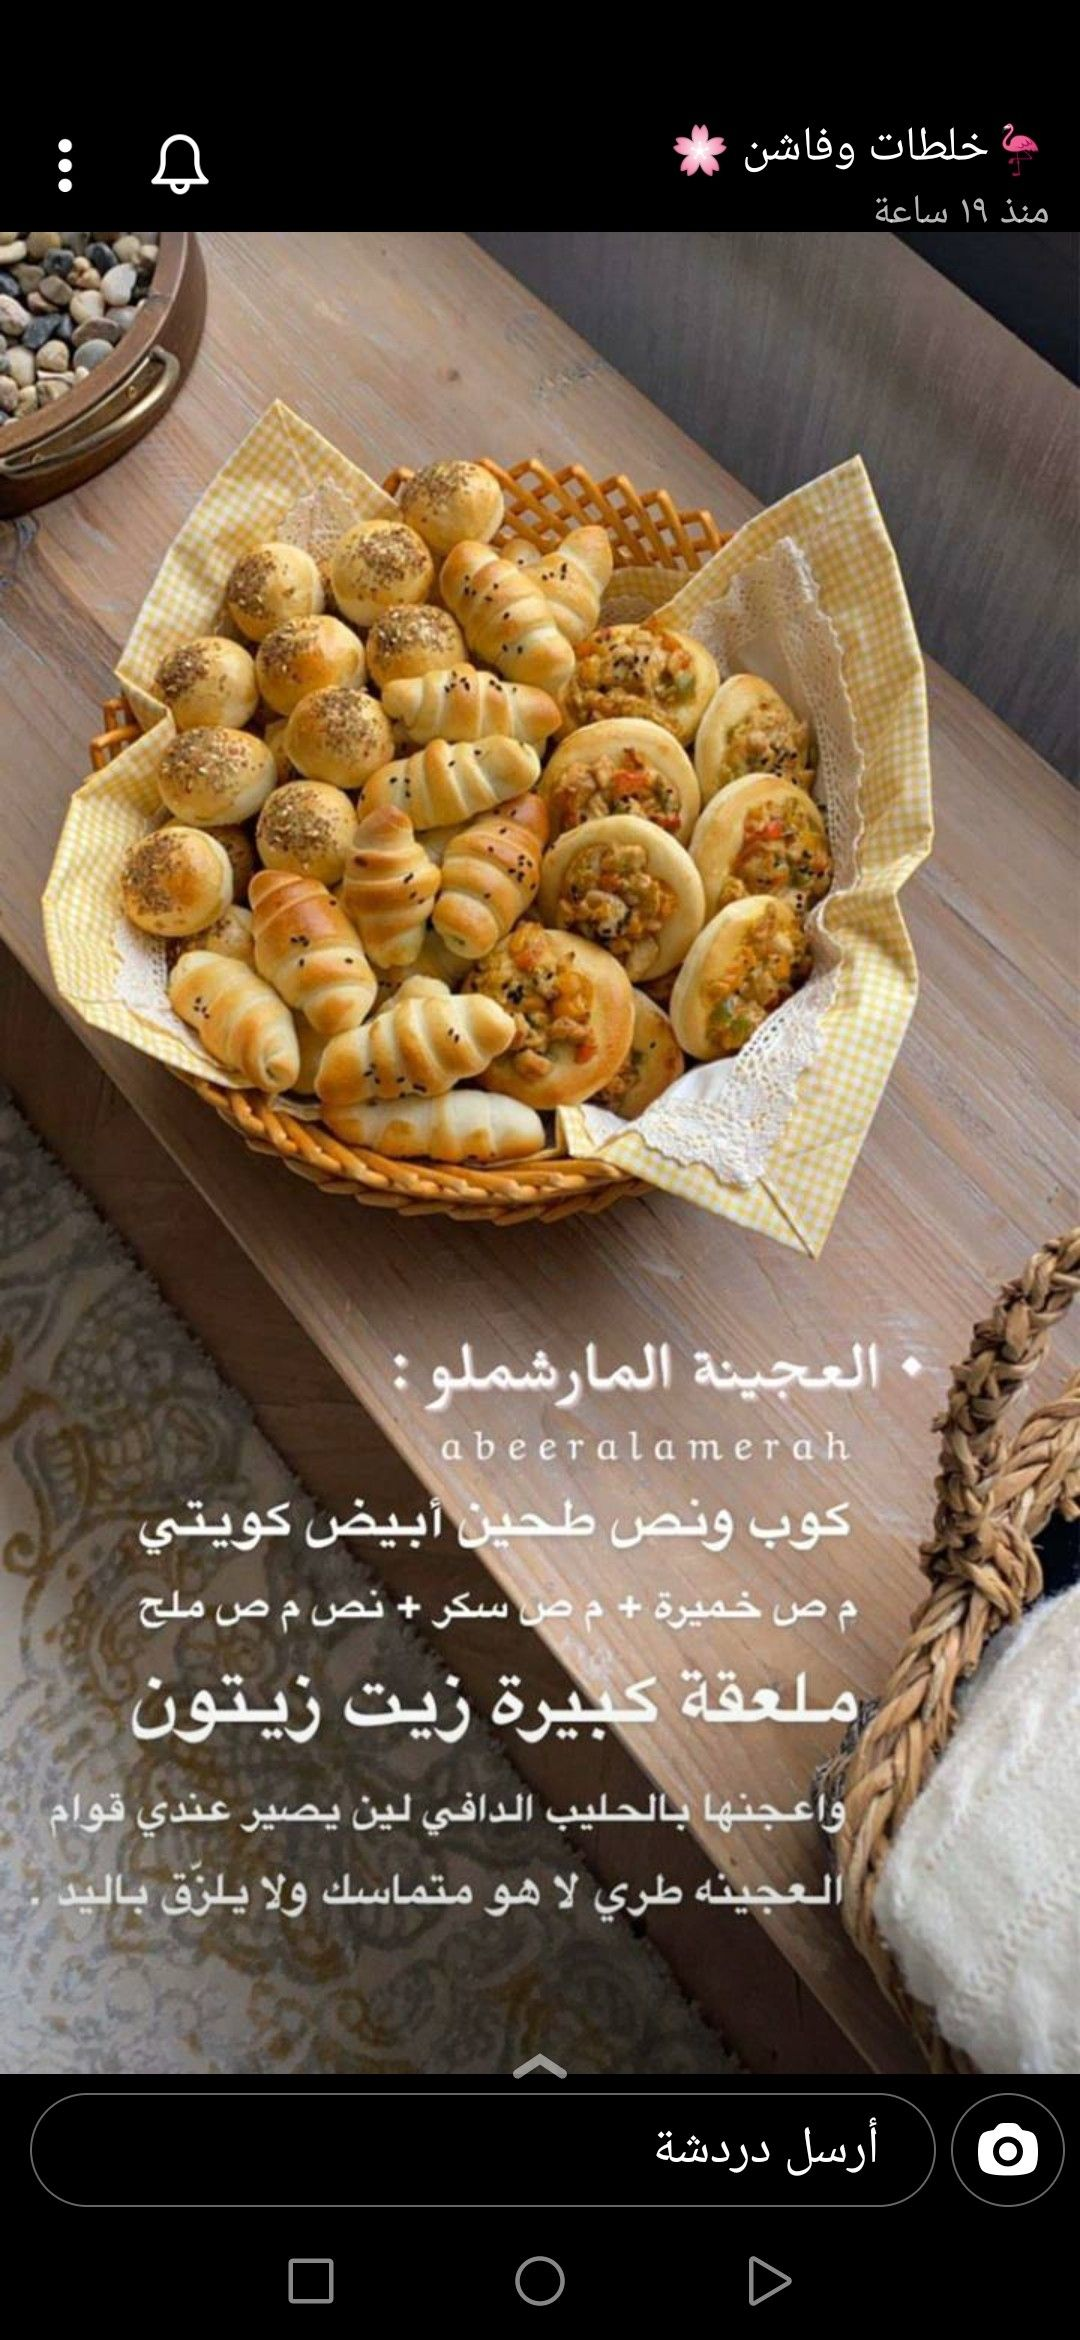 Pin By سوسن القاسم On تعليم الرسم In 2020 Food Garnishes Cooking Recipes Desserts Food Receipes